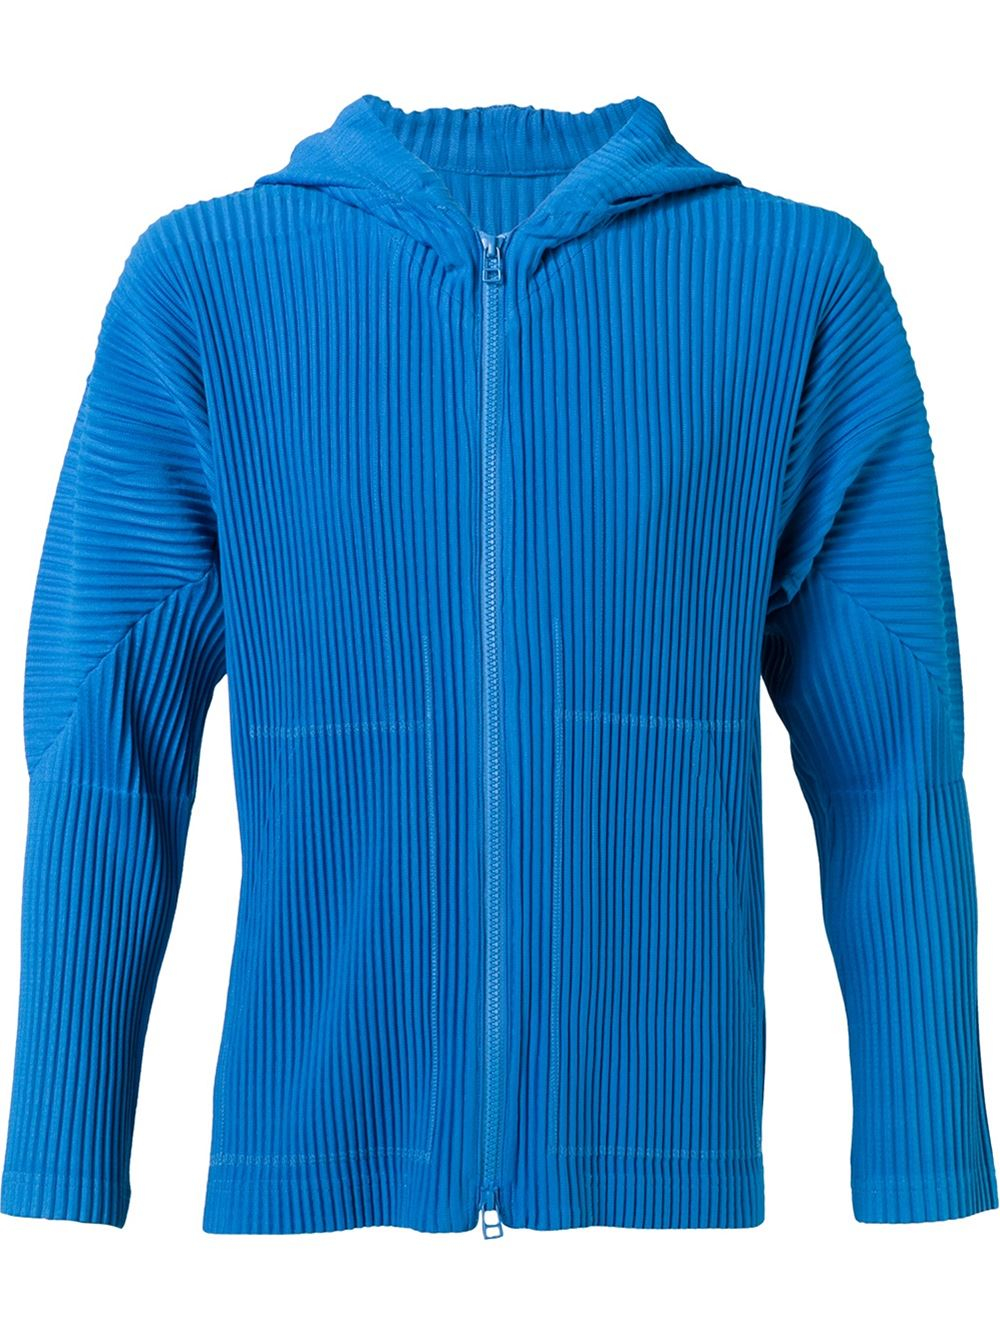 lyst homme pliss issey miyake homme pliss issey miyake track hoodie in blue for men. Black Bedroom Furniture Sets. Home Design Ideas